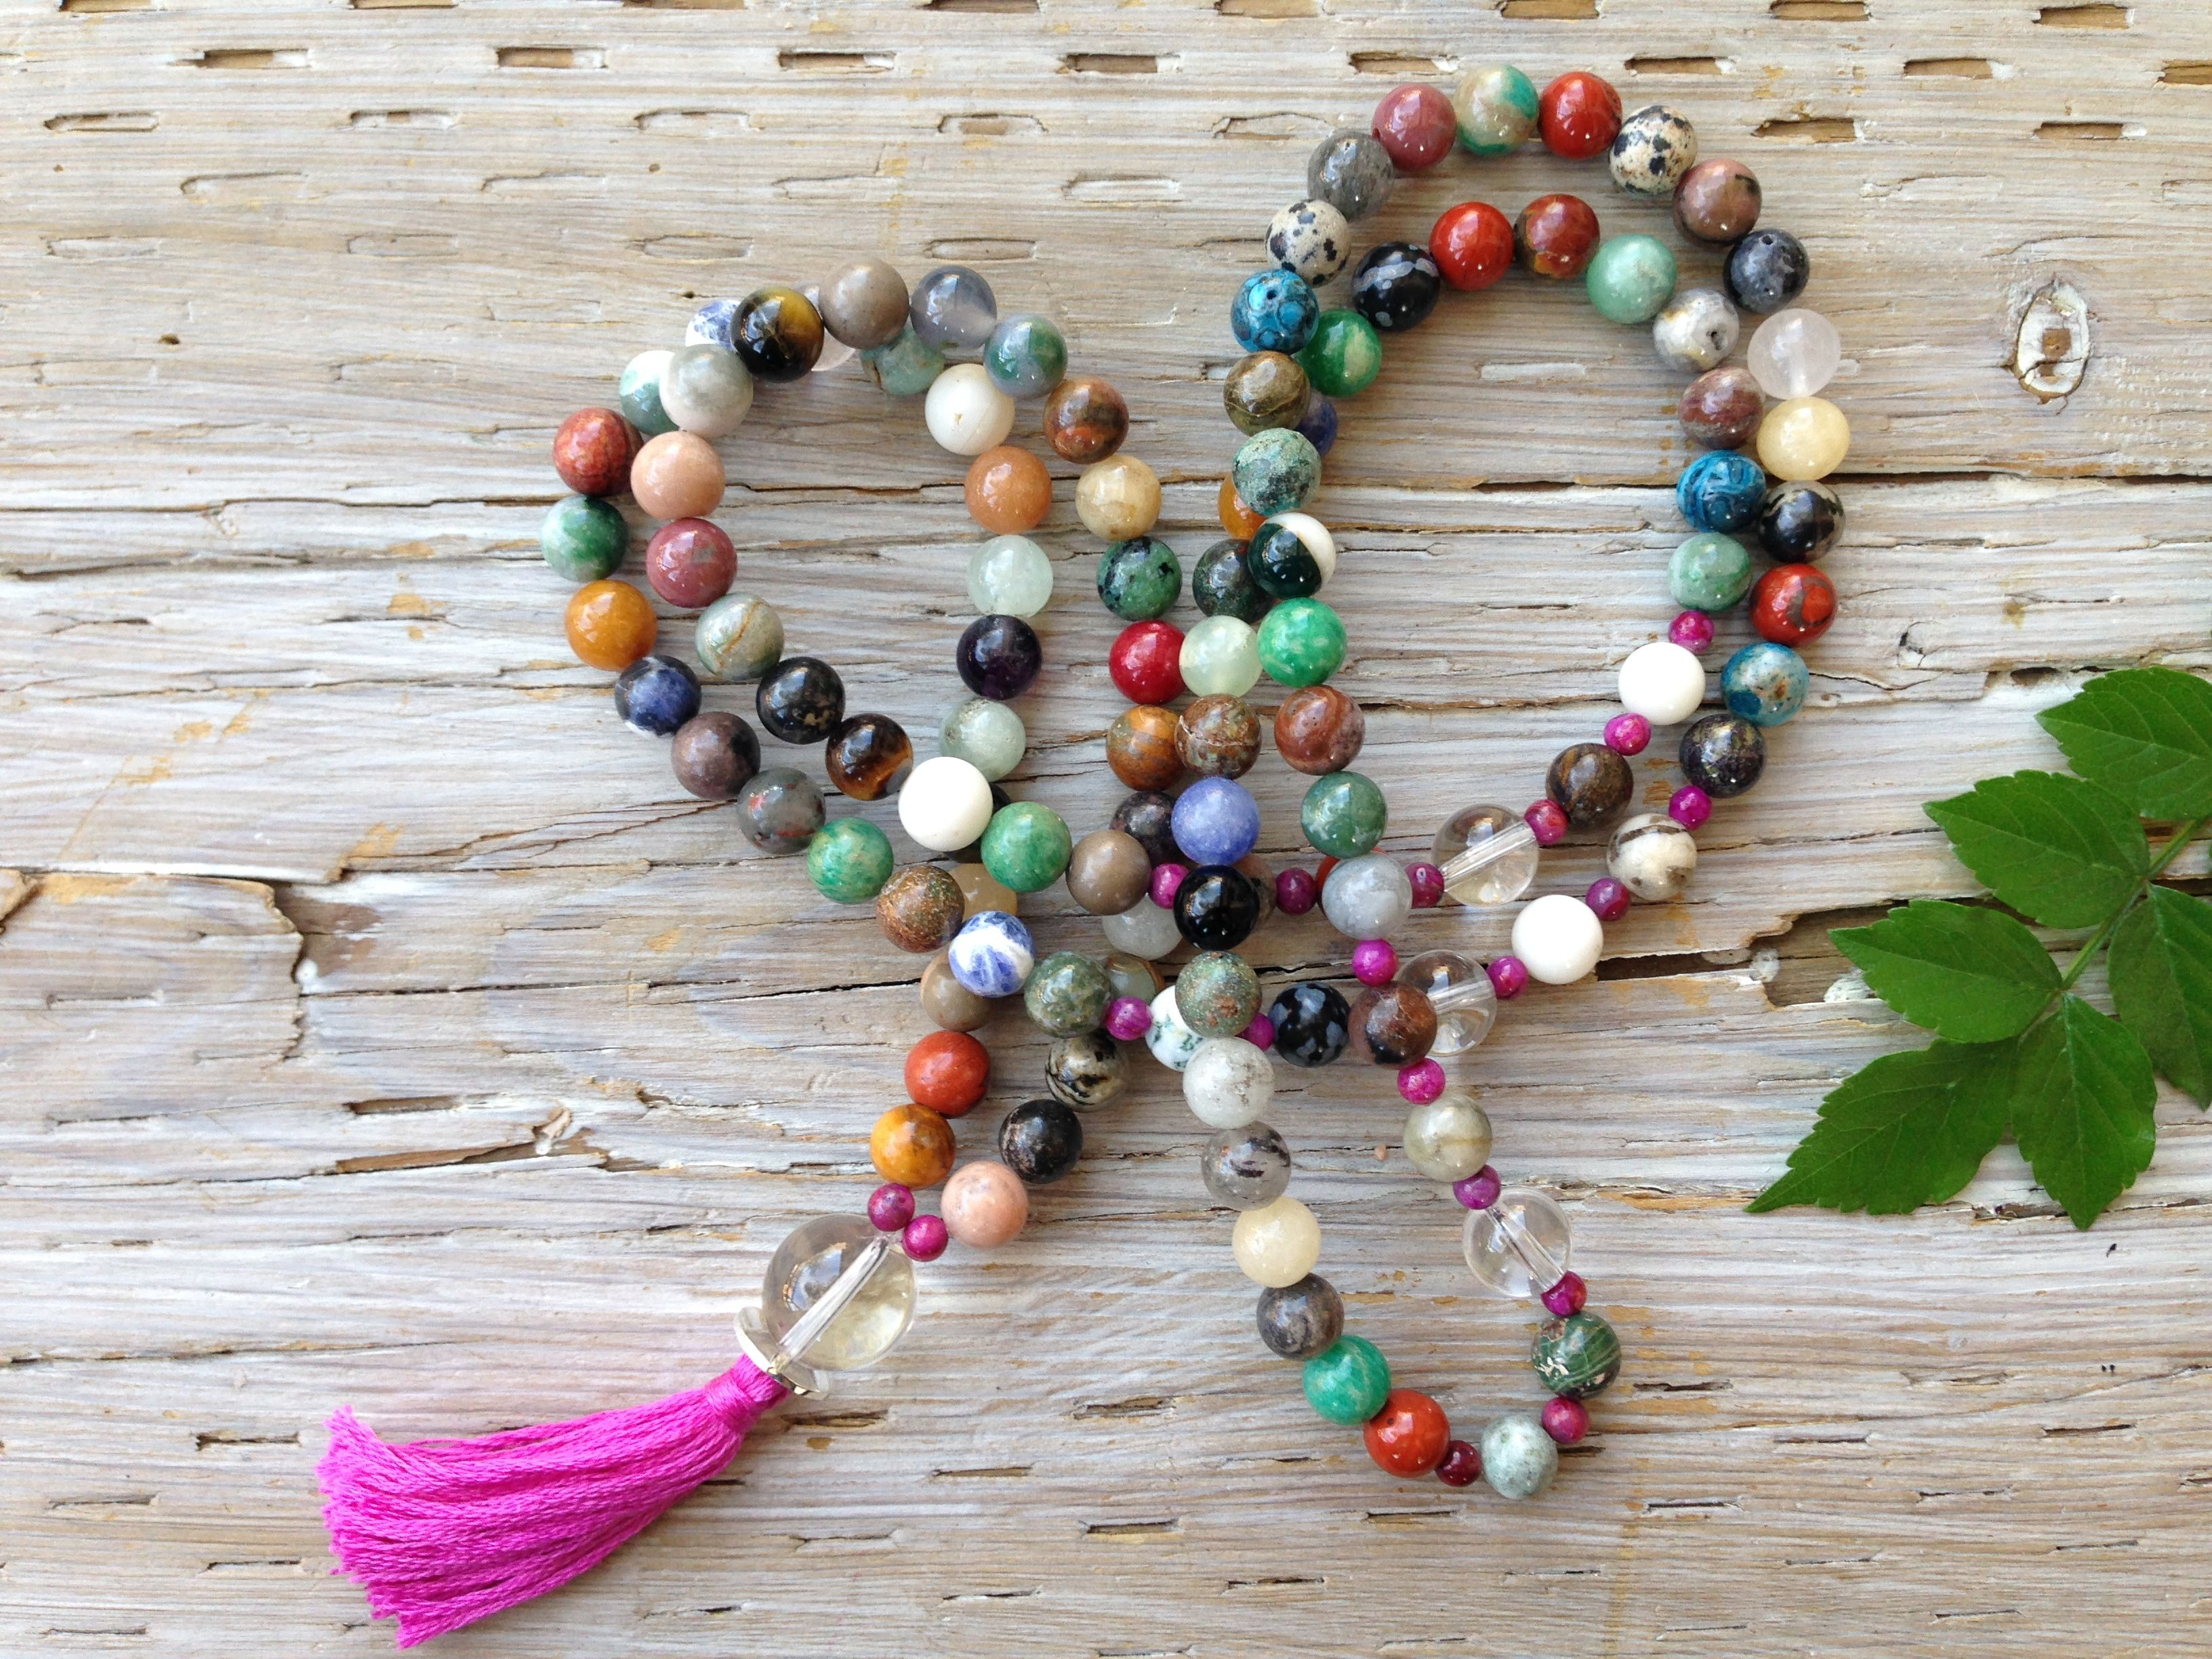 The newest trend in yoga jewelry wear your mala my wishlist the meaning of malas more than just beautiful adornment malas are powerful and symbolic tools for meditation this technique could be really soothing buycottarizona